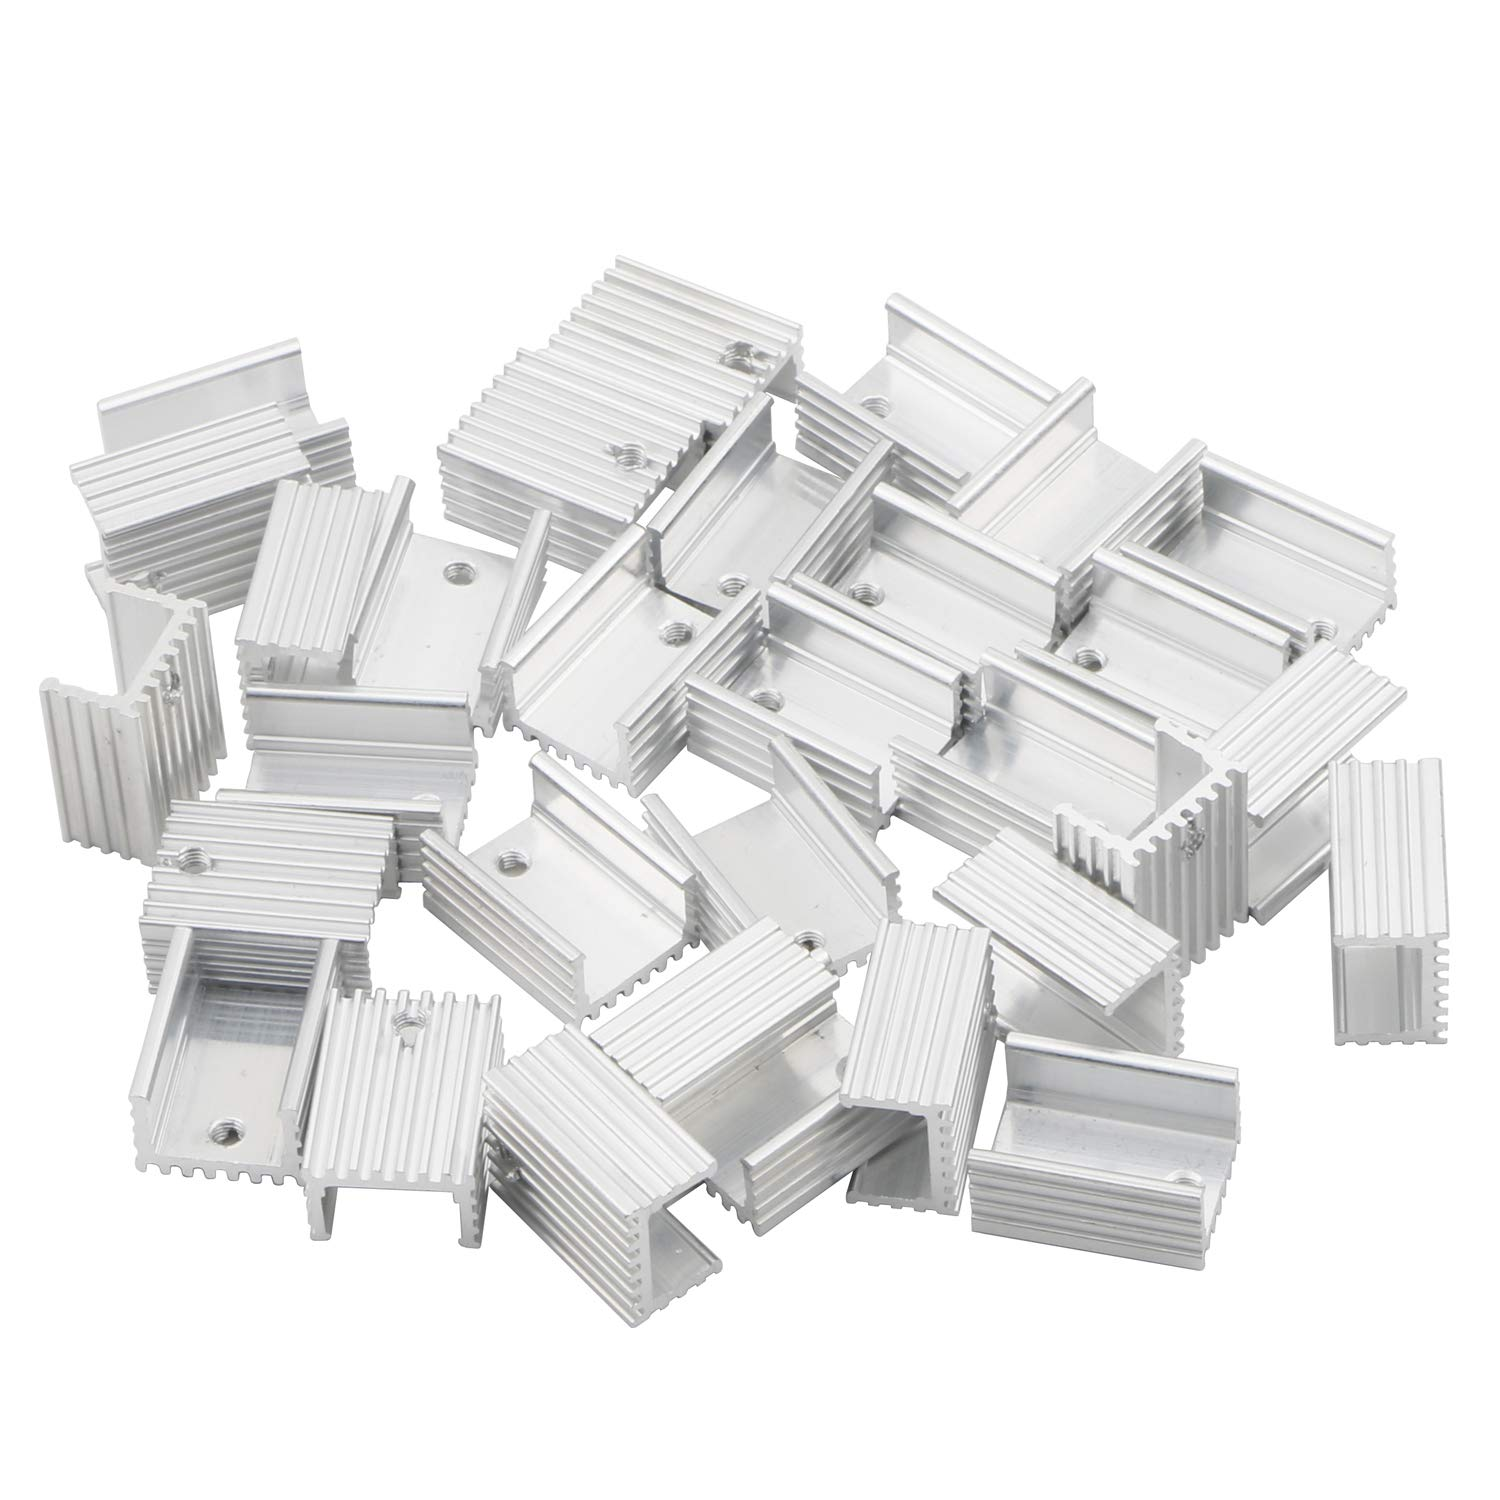 Senmod 20x15x10mm Cooling Module, Aluminum Heat Sink Heatsink Cooler Fin for TO220 7805 7812 7905, Pack of 50